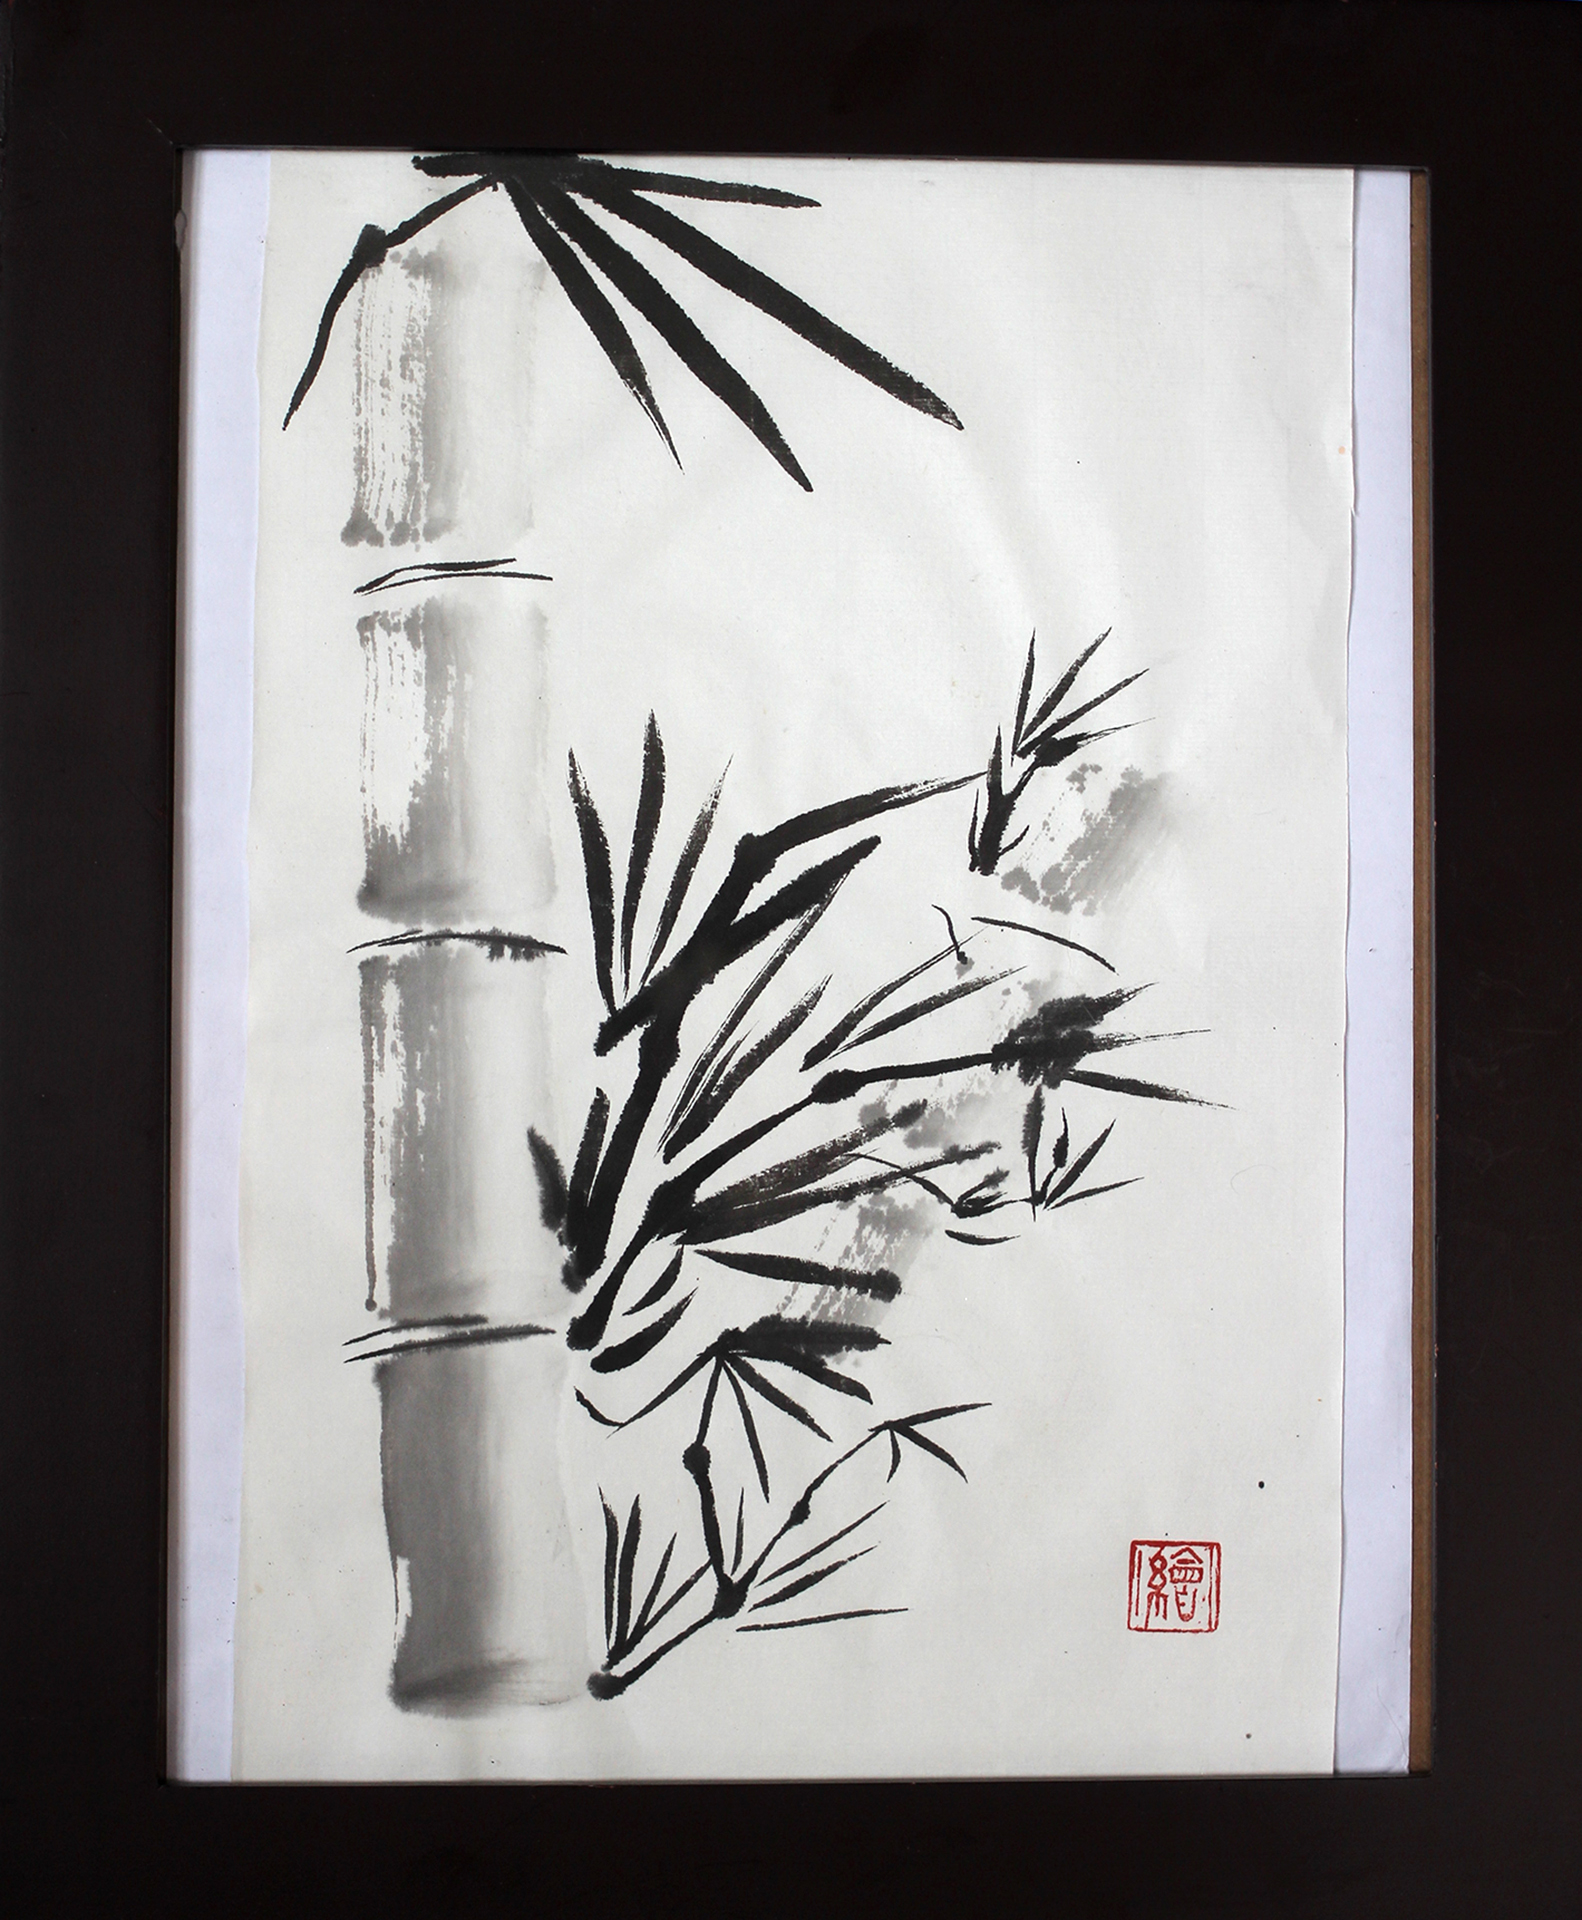 Sumi-e bamboo large file